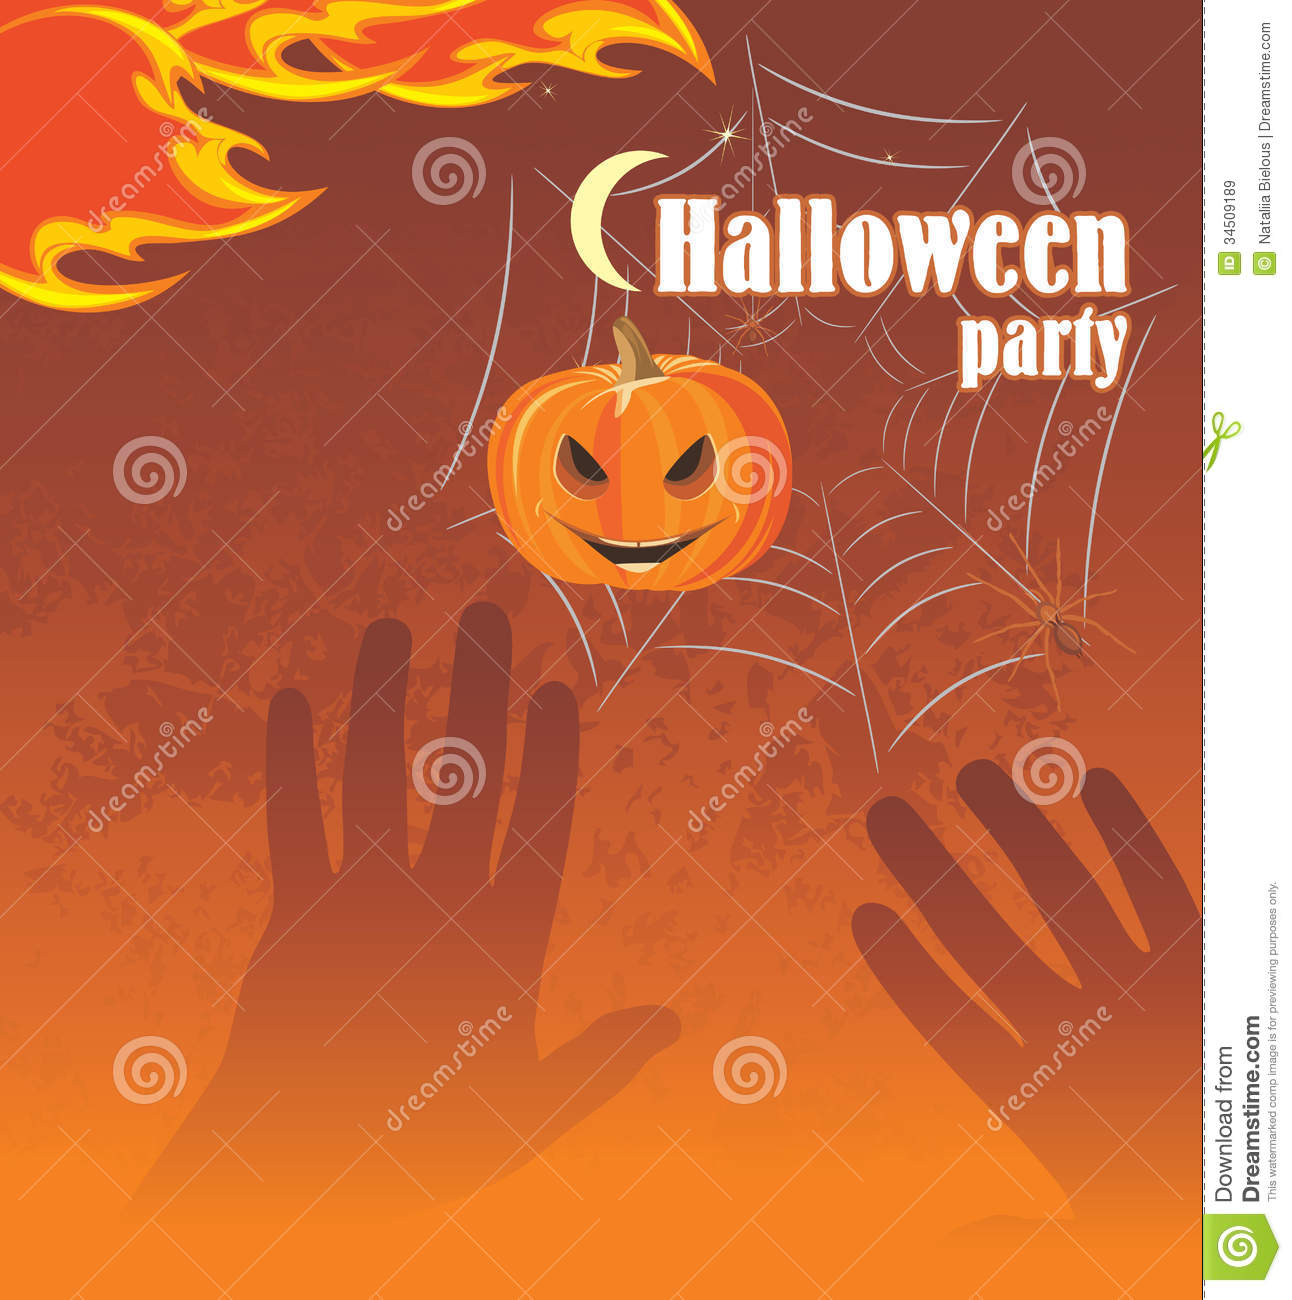 Halloween party. Abstract background